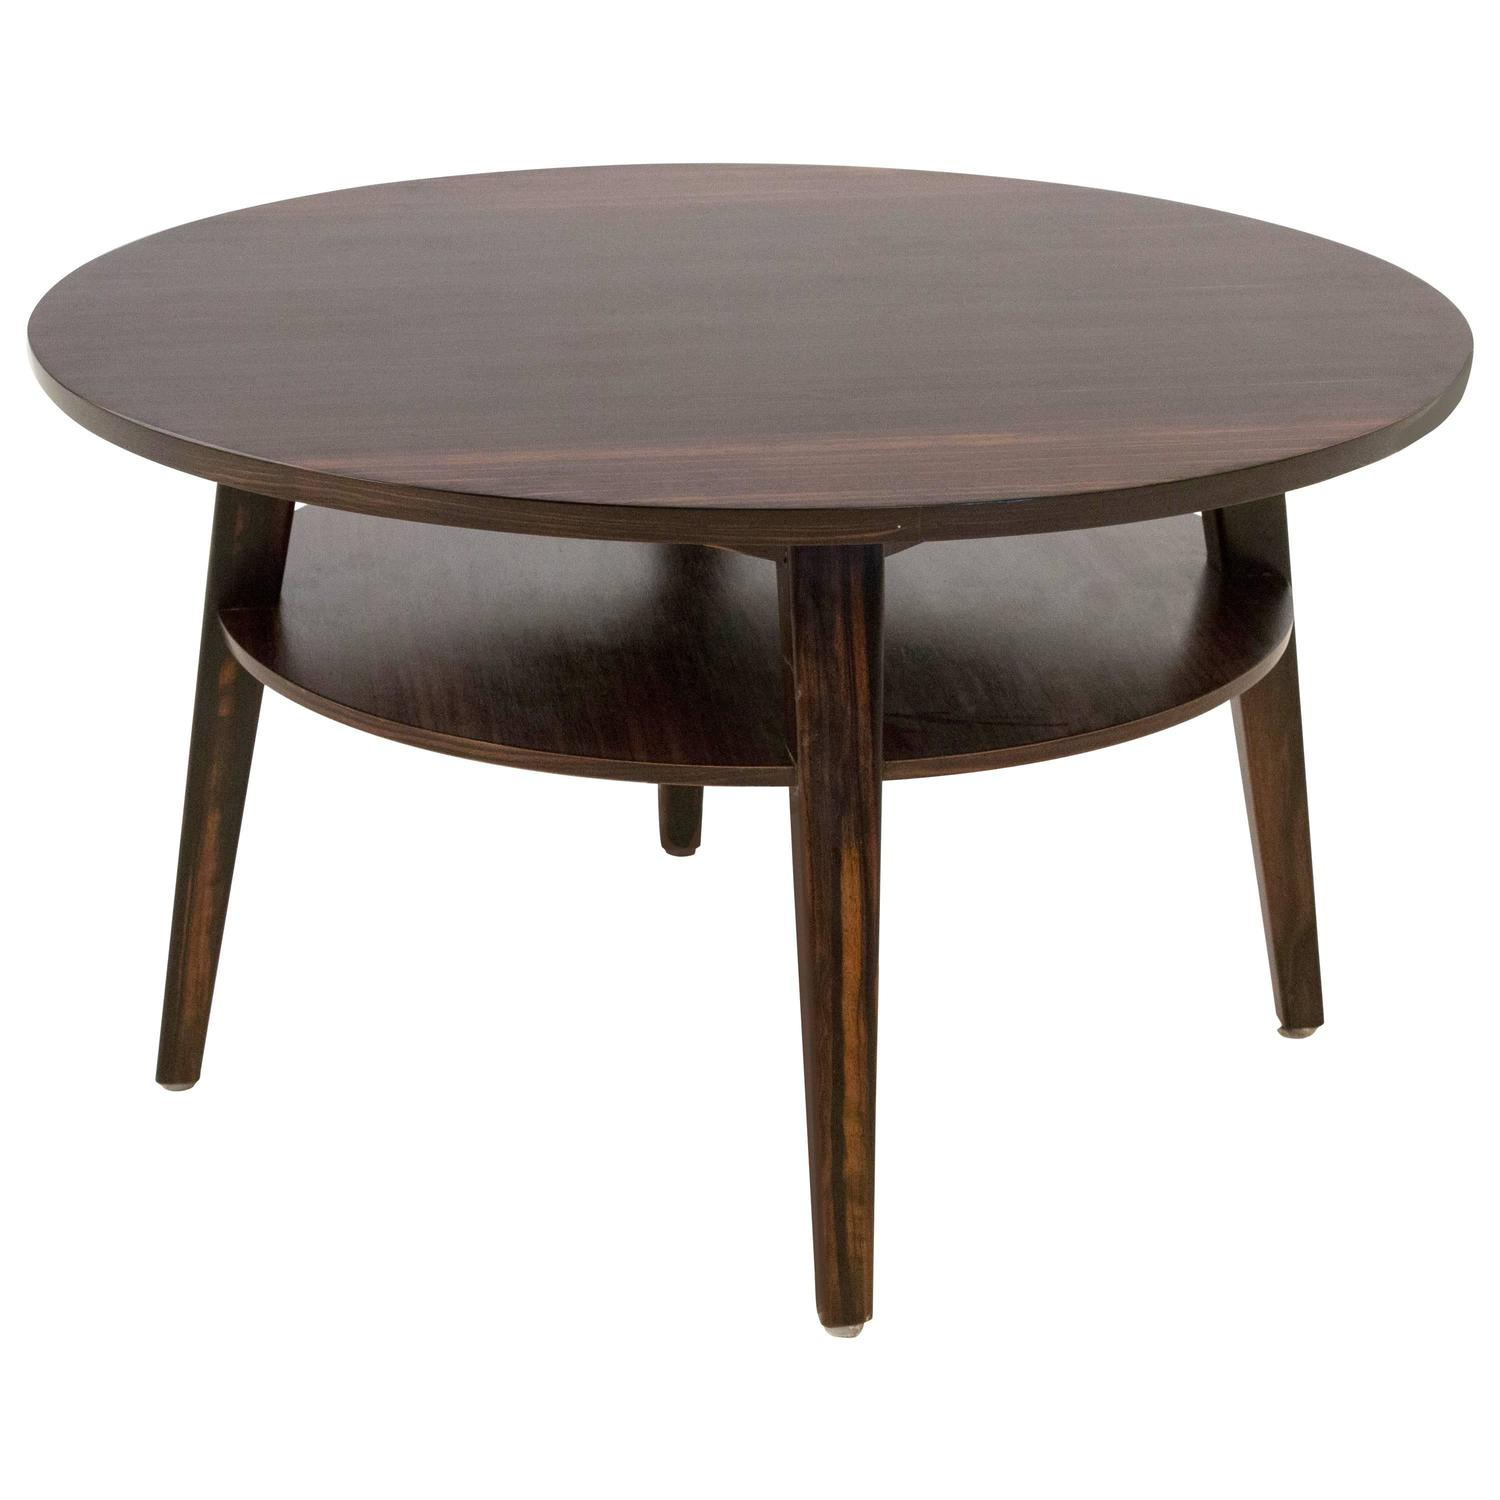 Mid century modern coffee table by pander for sale at 1stdibs for Modern coffee table sale